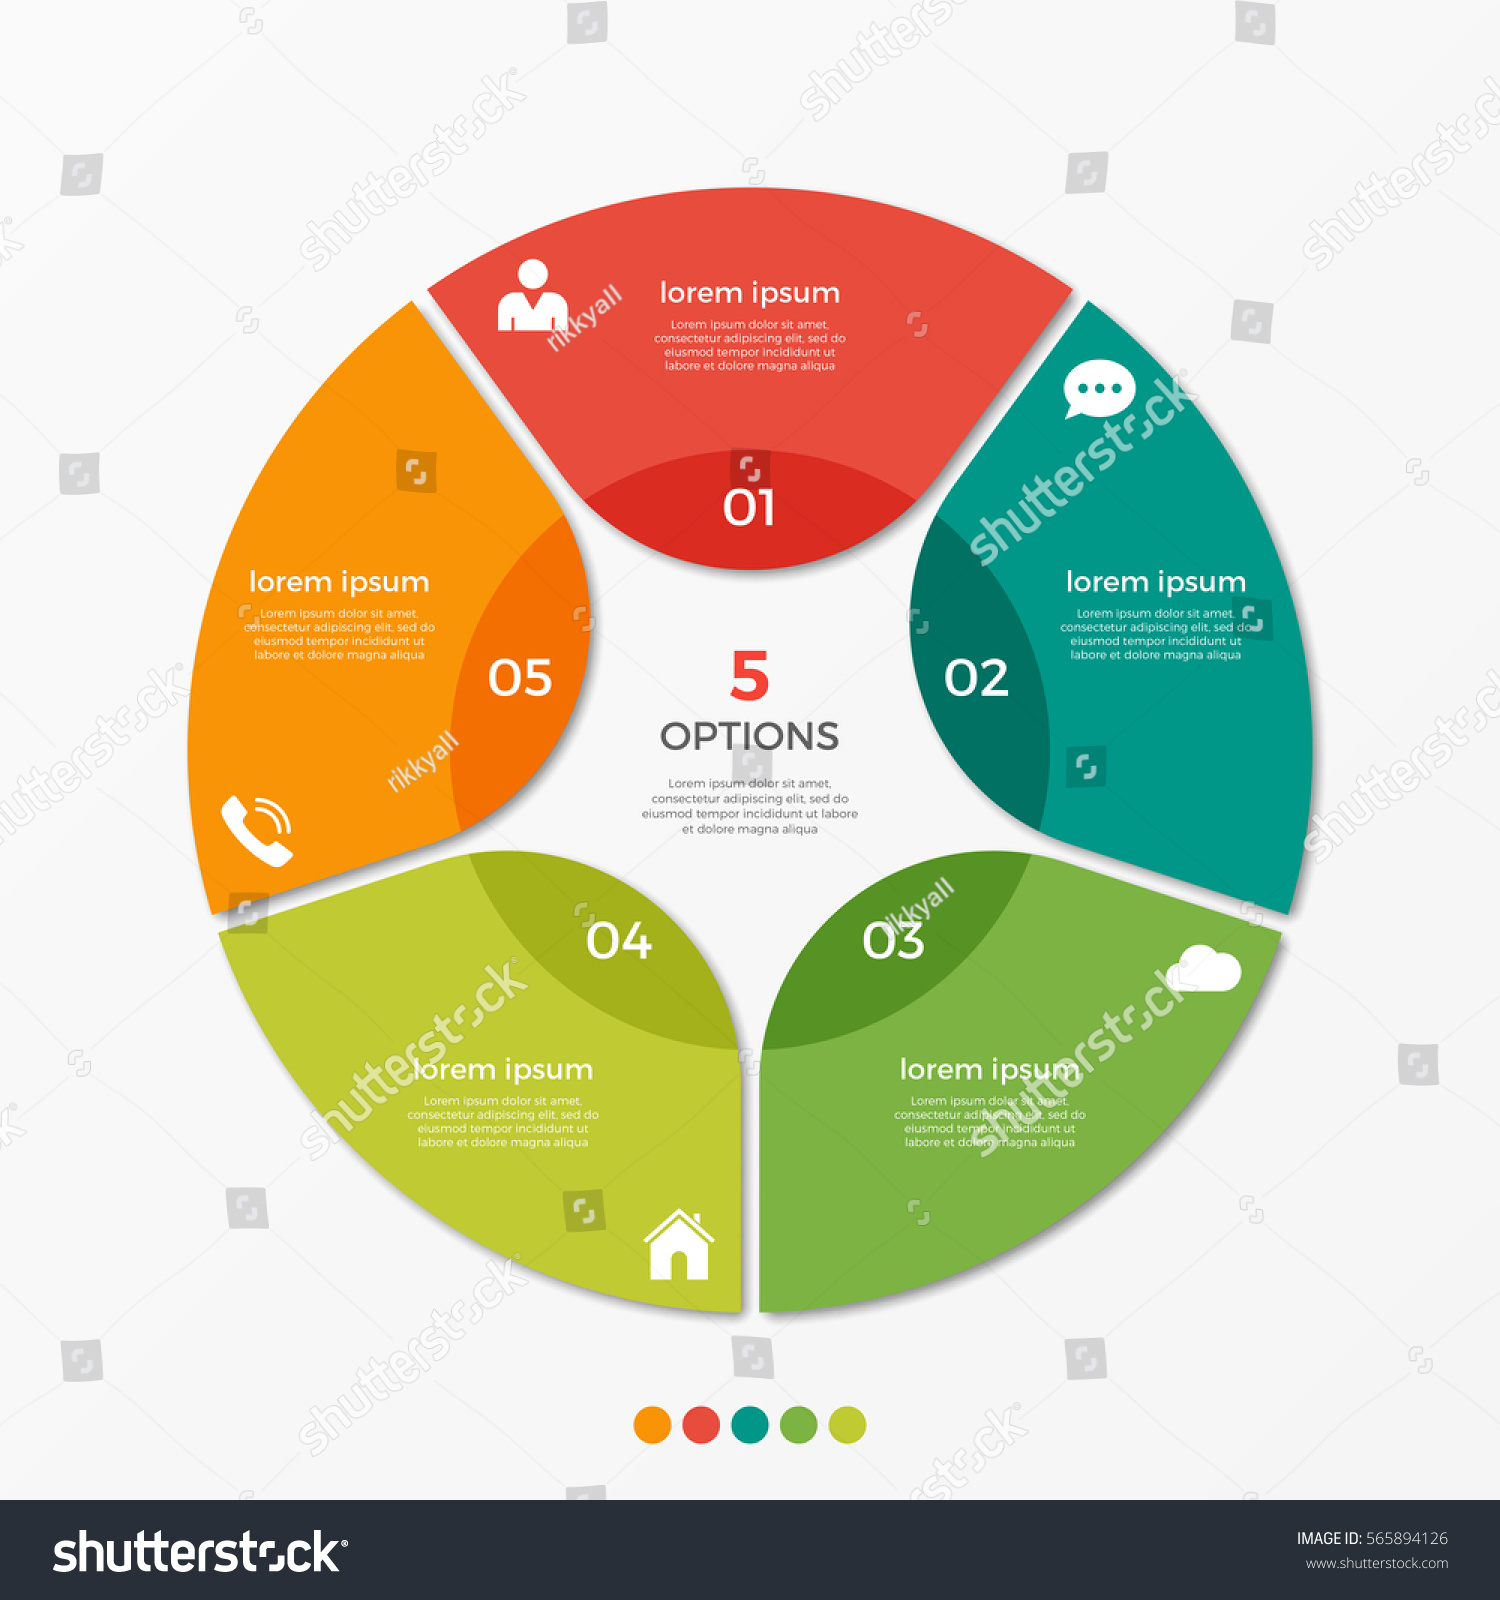 circle chart infographic template 5 options のベクター画像素材